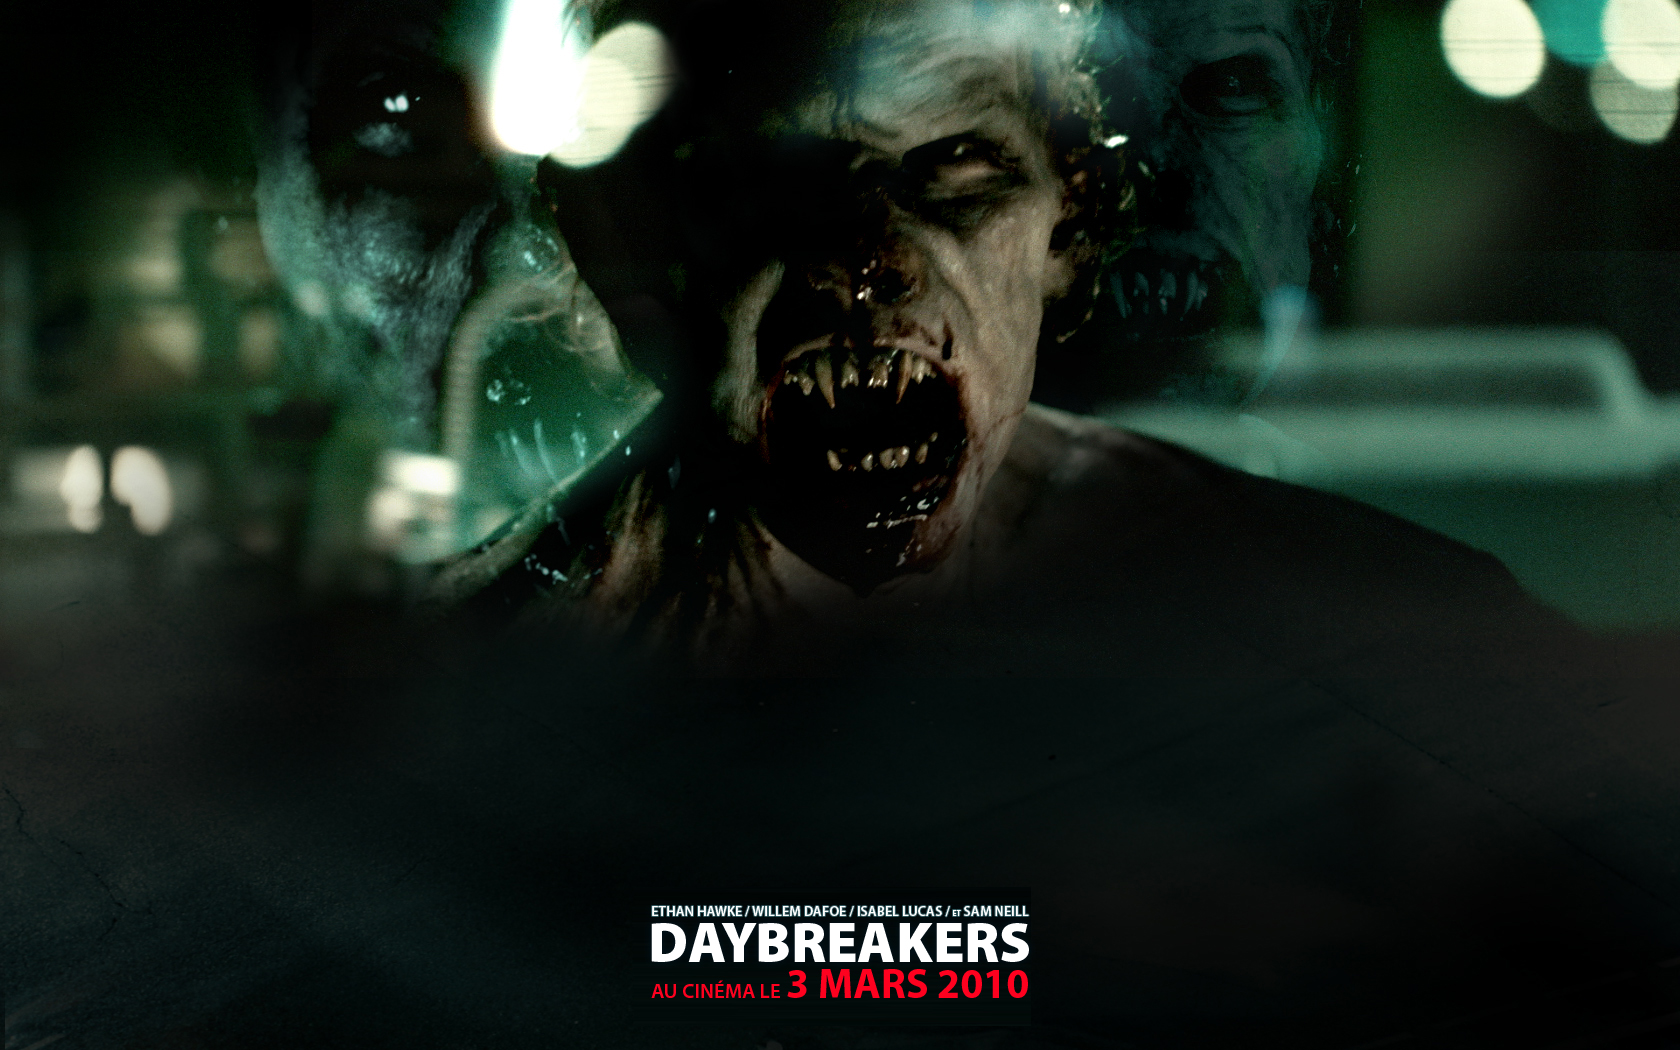 Daybreakers_02_1680x1050.jpg